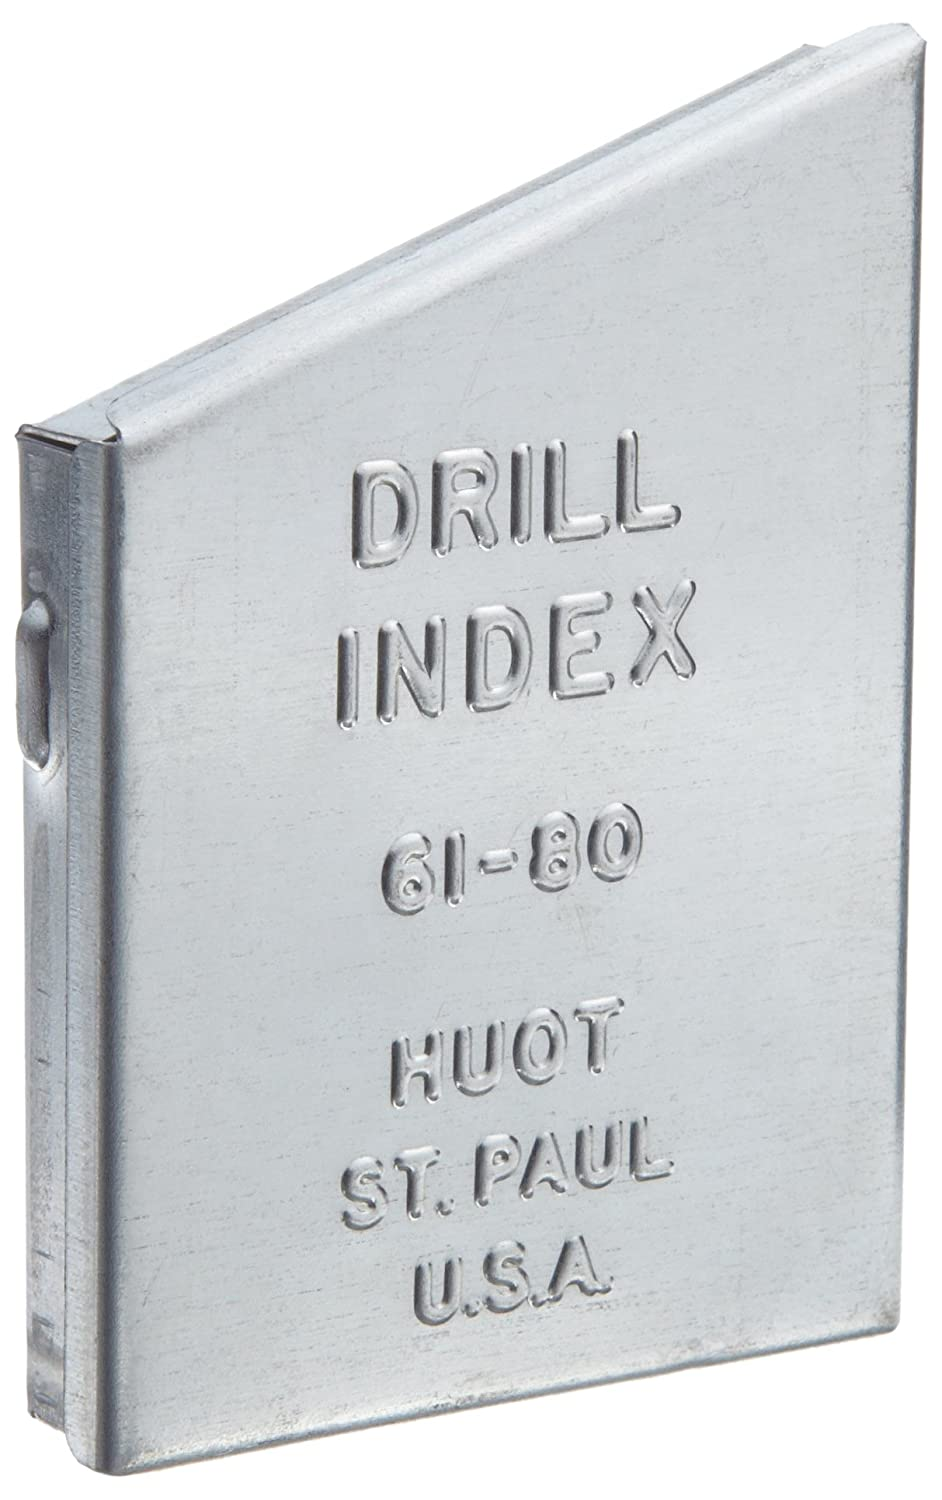 Wire gauge drills dolgular huot drill bit index for wire gauge sizes 61 to 80 amazon keyboard keysfo